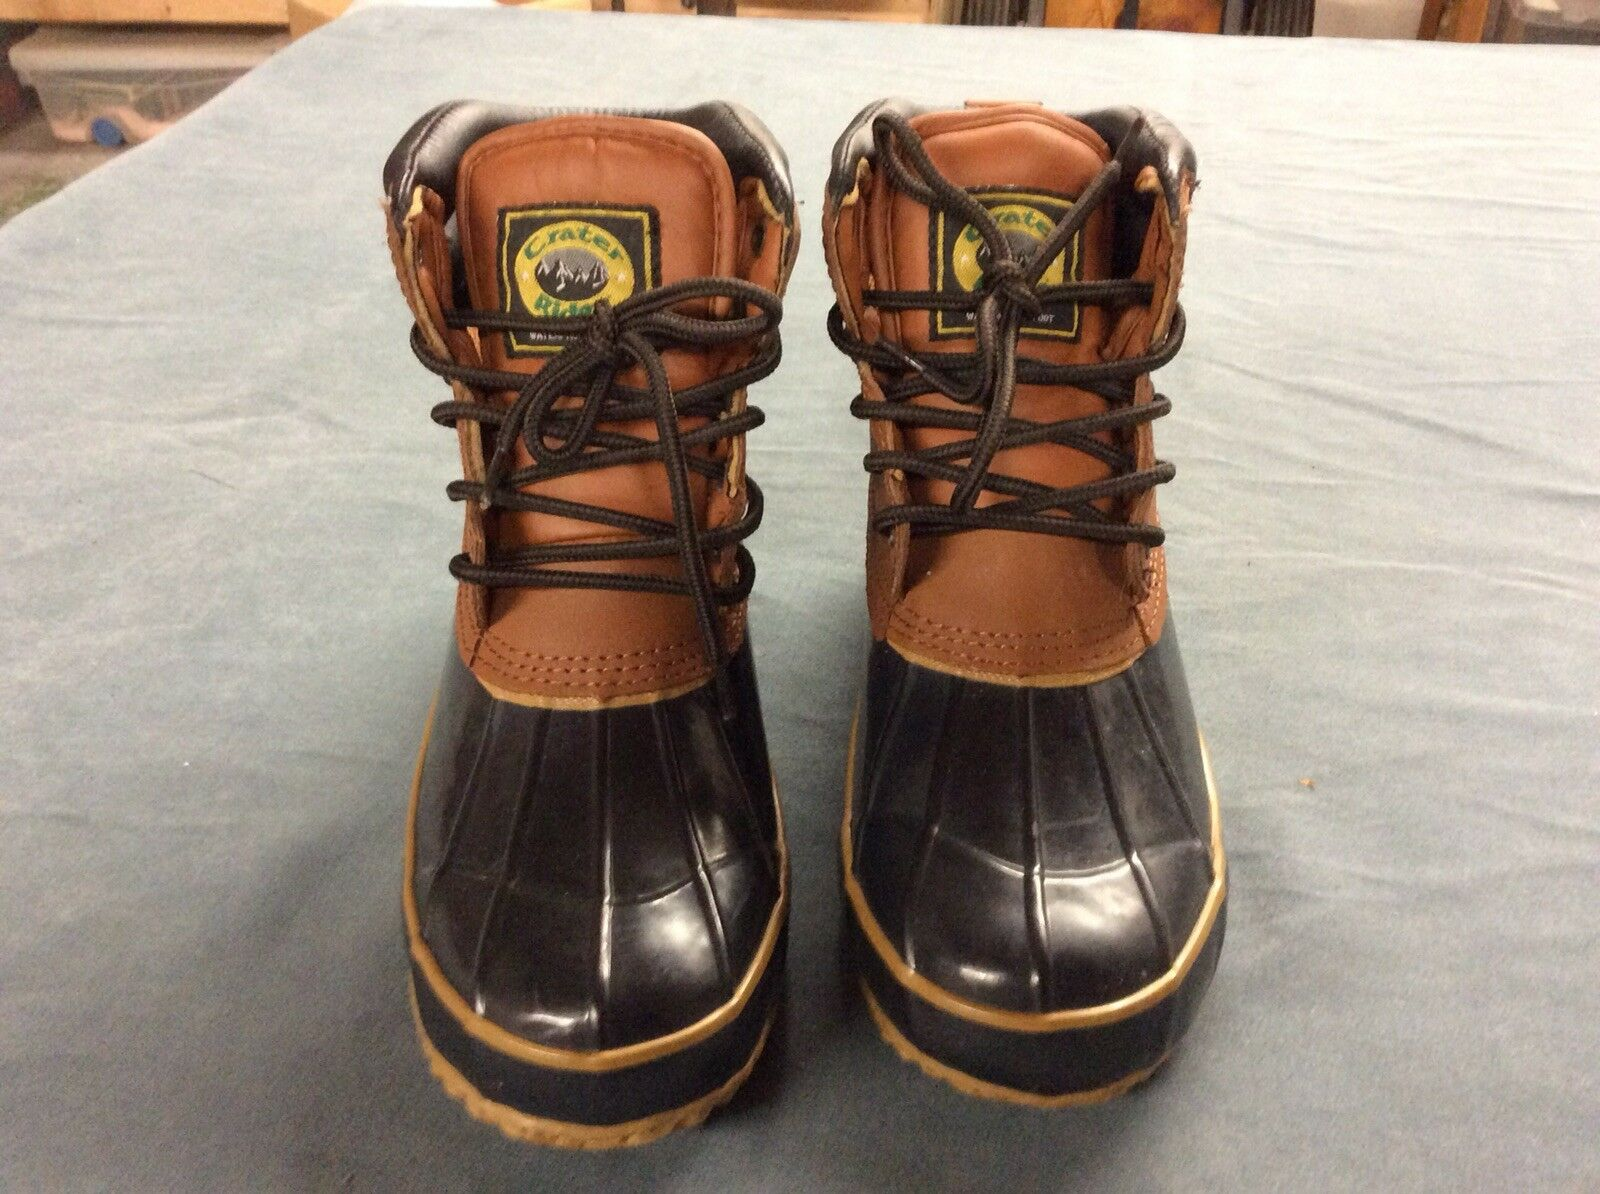 Crater Ridge Duck Boots, Pike 2, Leather Upper, Steel Shank, Sz 7M